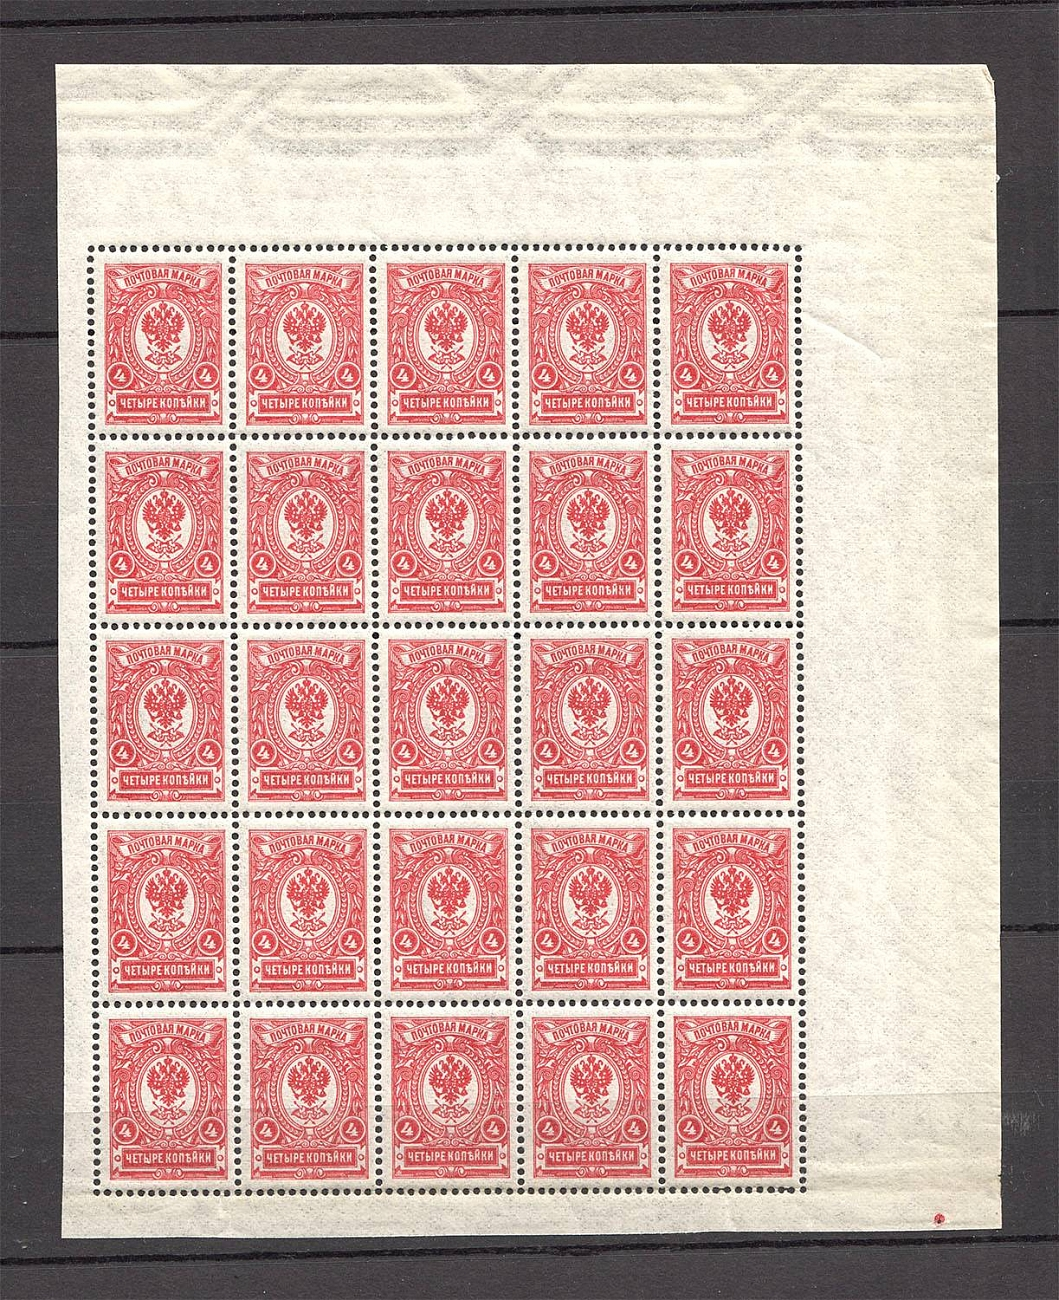 Lot 20 - Russia: Empire & Offices Abroad blocks -  OldLouis Auctions Russia: Empire & Offices Abroad - Rare Stamps Auction №8